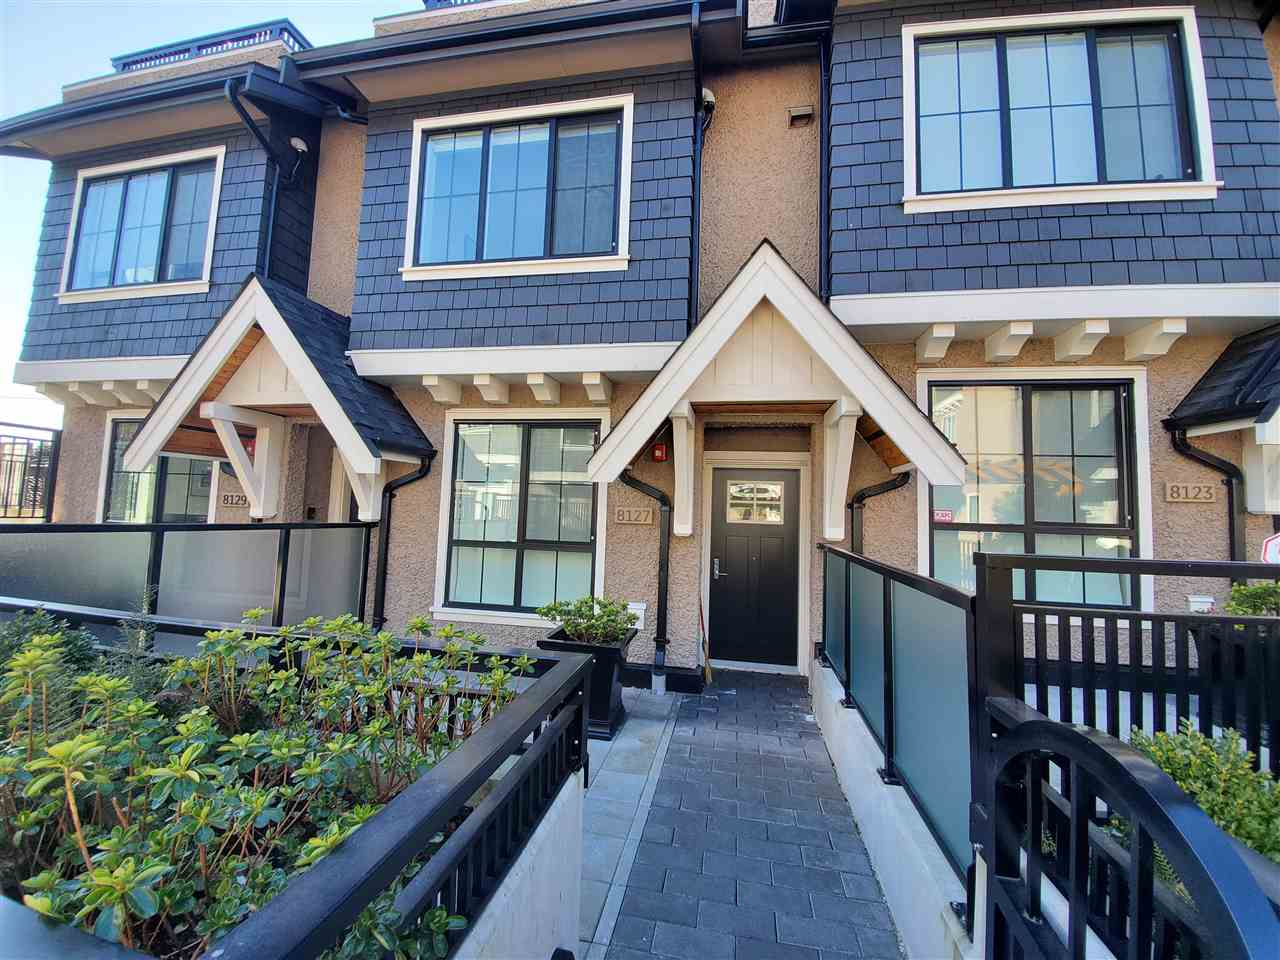 8127 SHAUGHNESSY STREET, Vancouver West